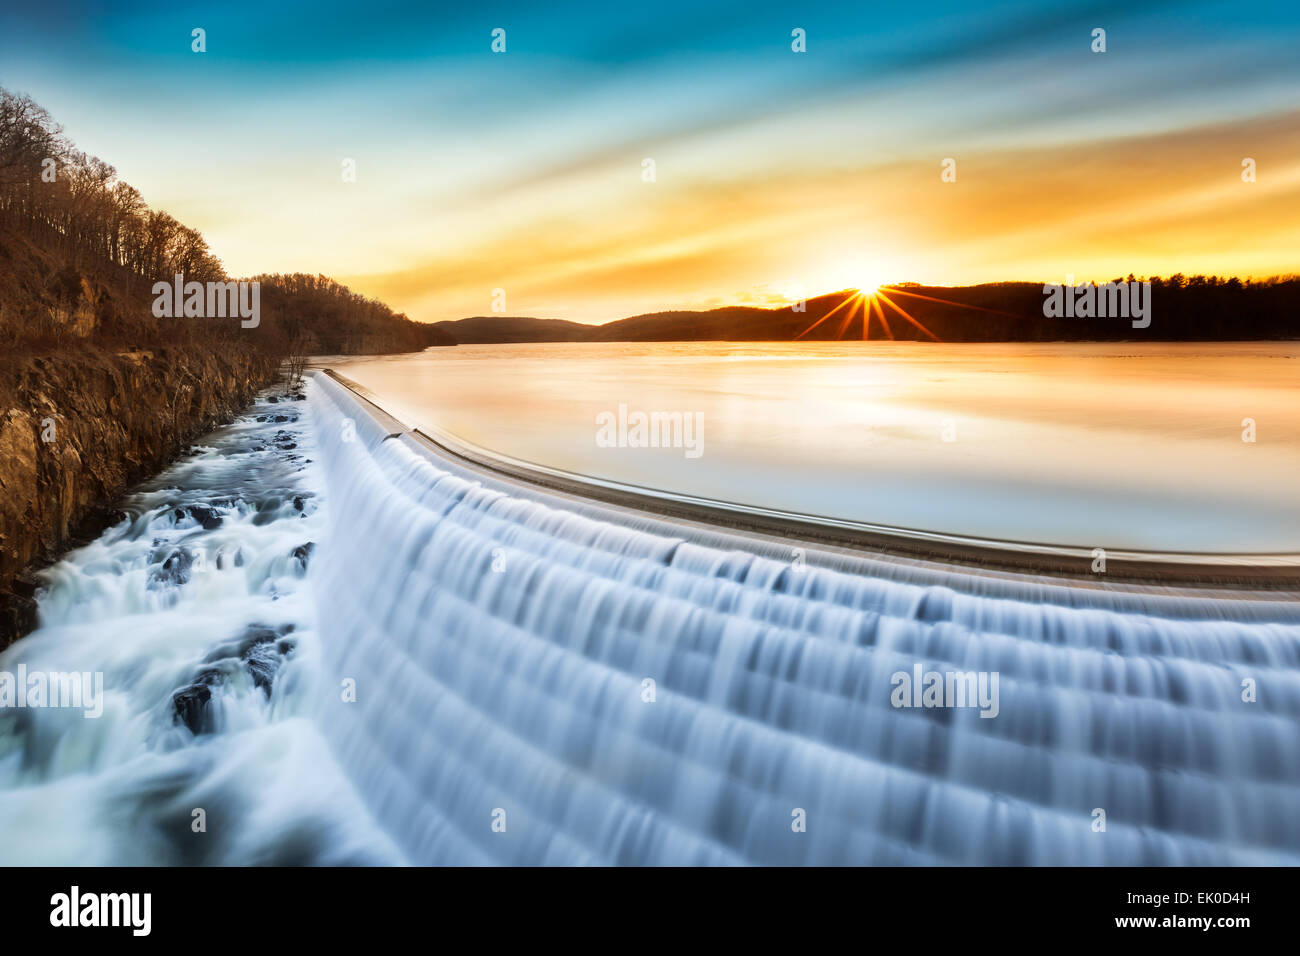 Sunrise over Croton Dam, NY and its stepped spillway waterfall - Stock Image